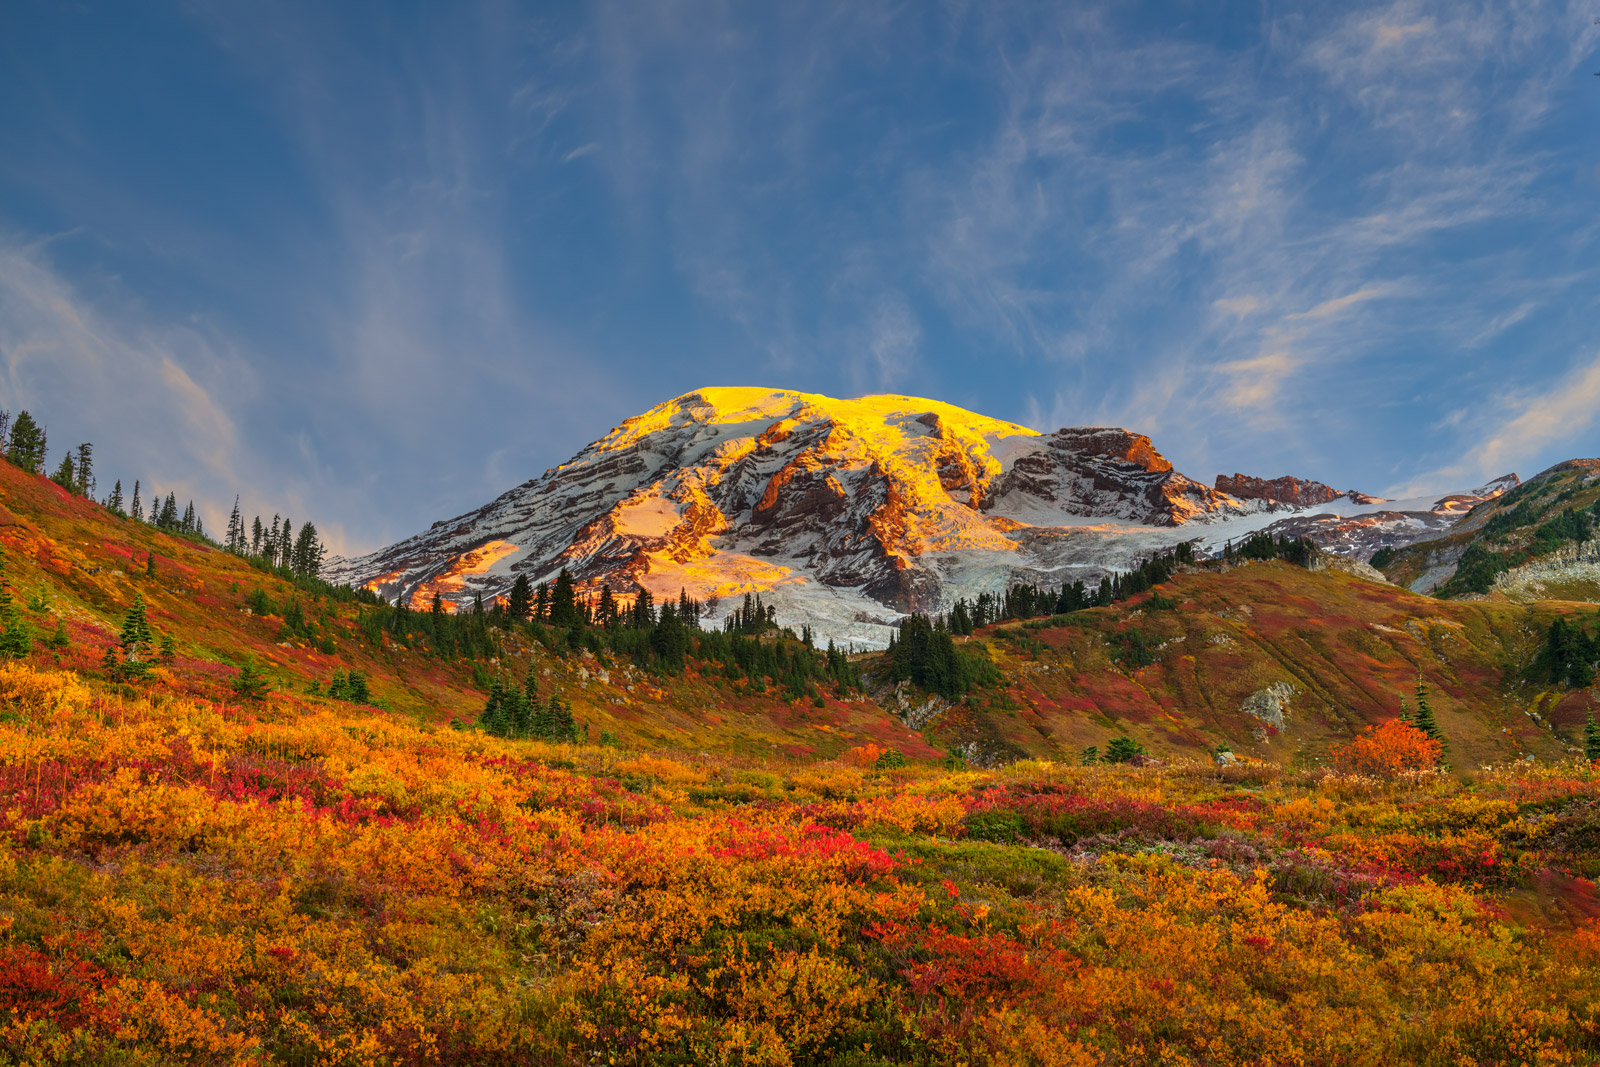 A Limited Edition, Fine Art photograph of brilliant orange and red fall colors in the field in front of Mount Rainier in Washington...